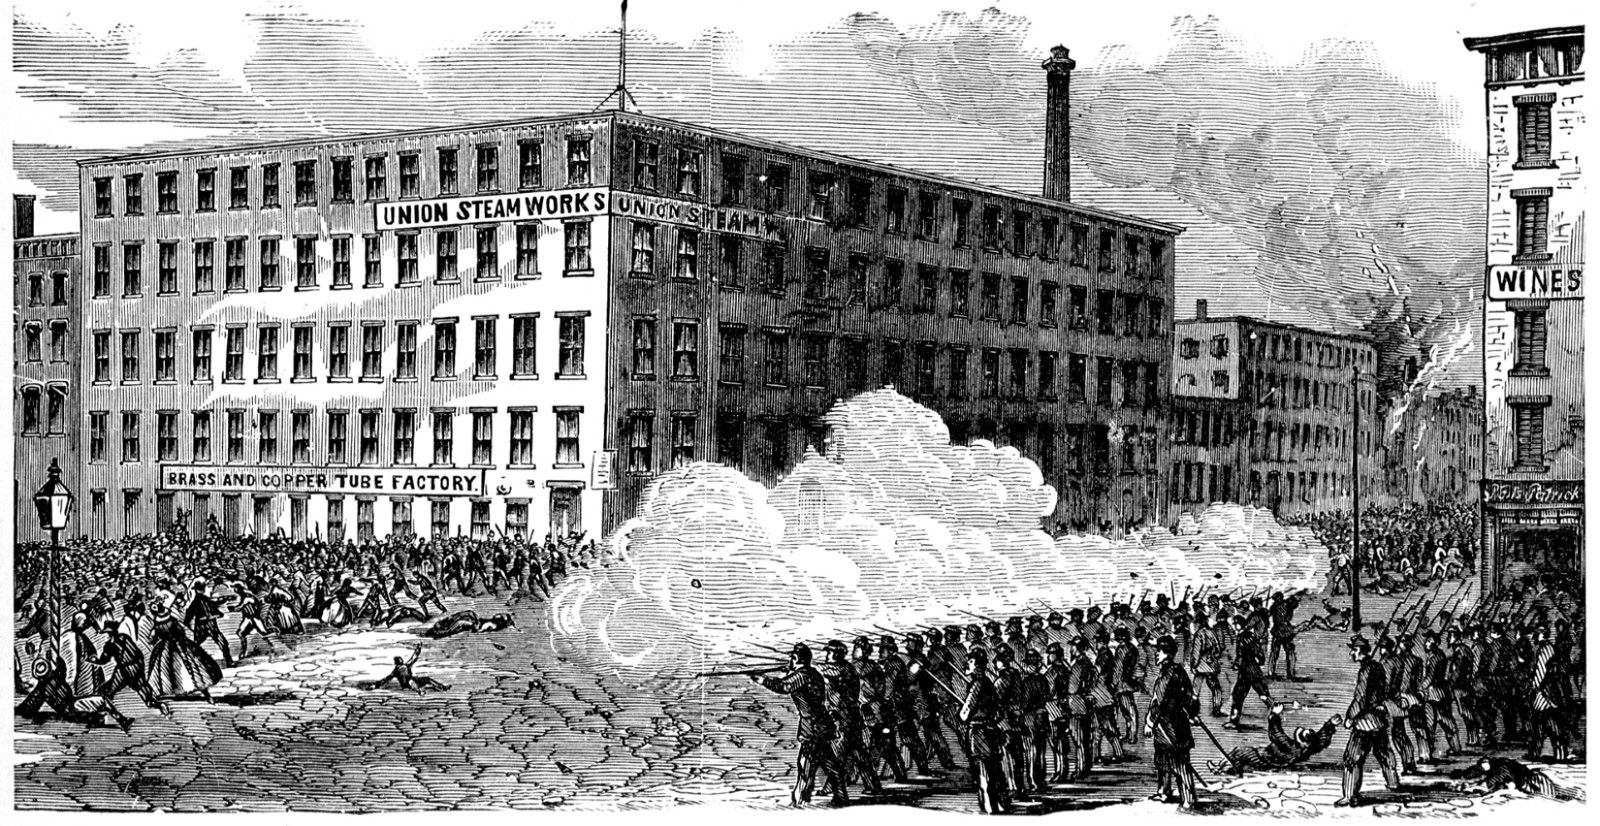 The New York City Draft Riots Depicted In The Climax Of Gangs Of